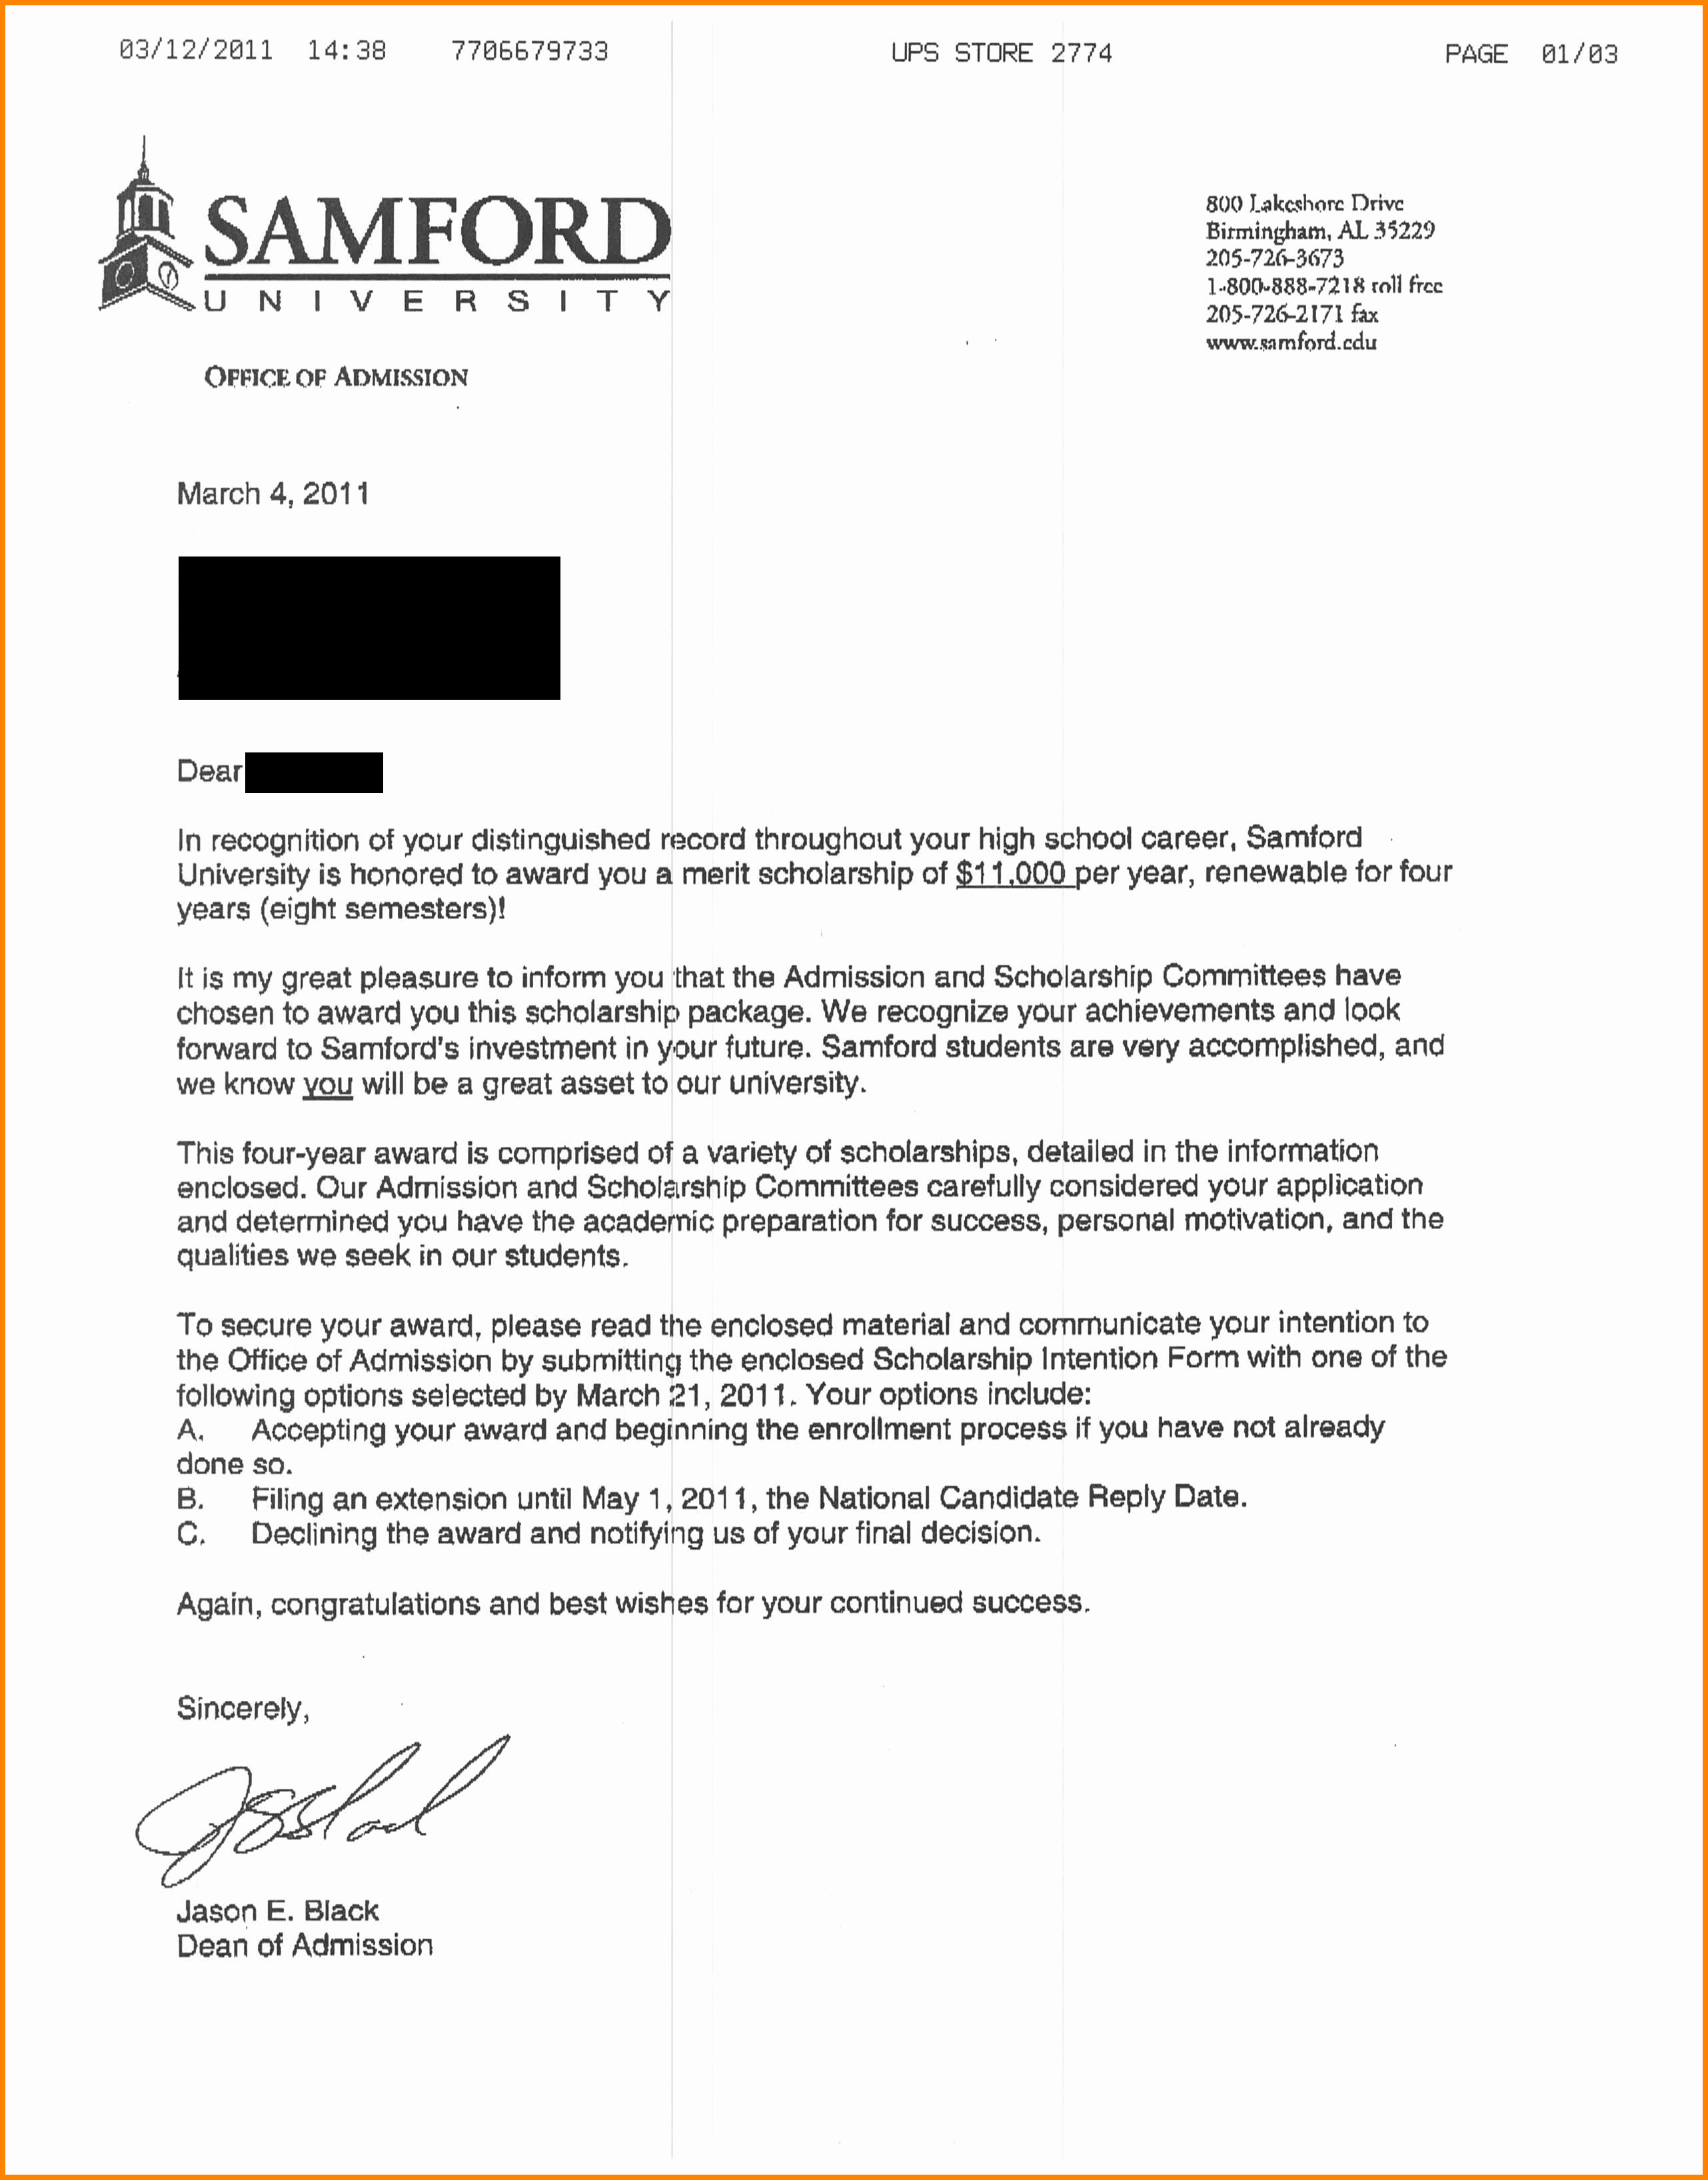 College Acceptance Letter Sample New 6 College Acceptance Letter Sample